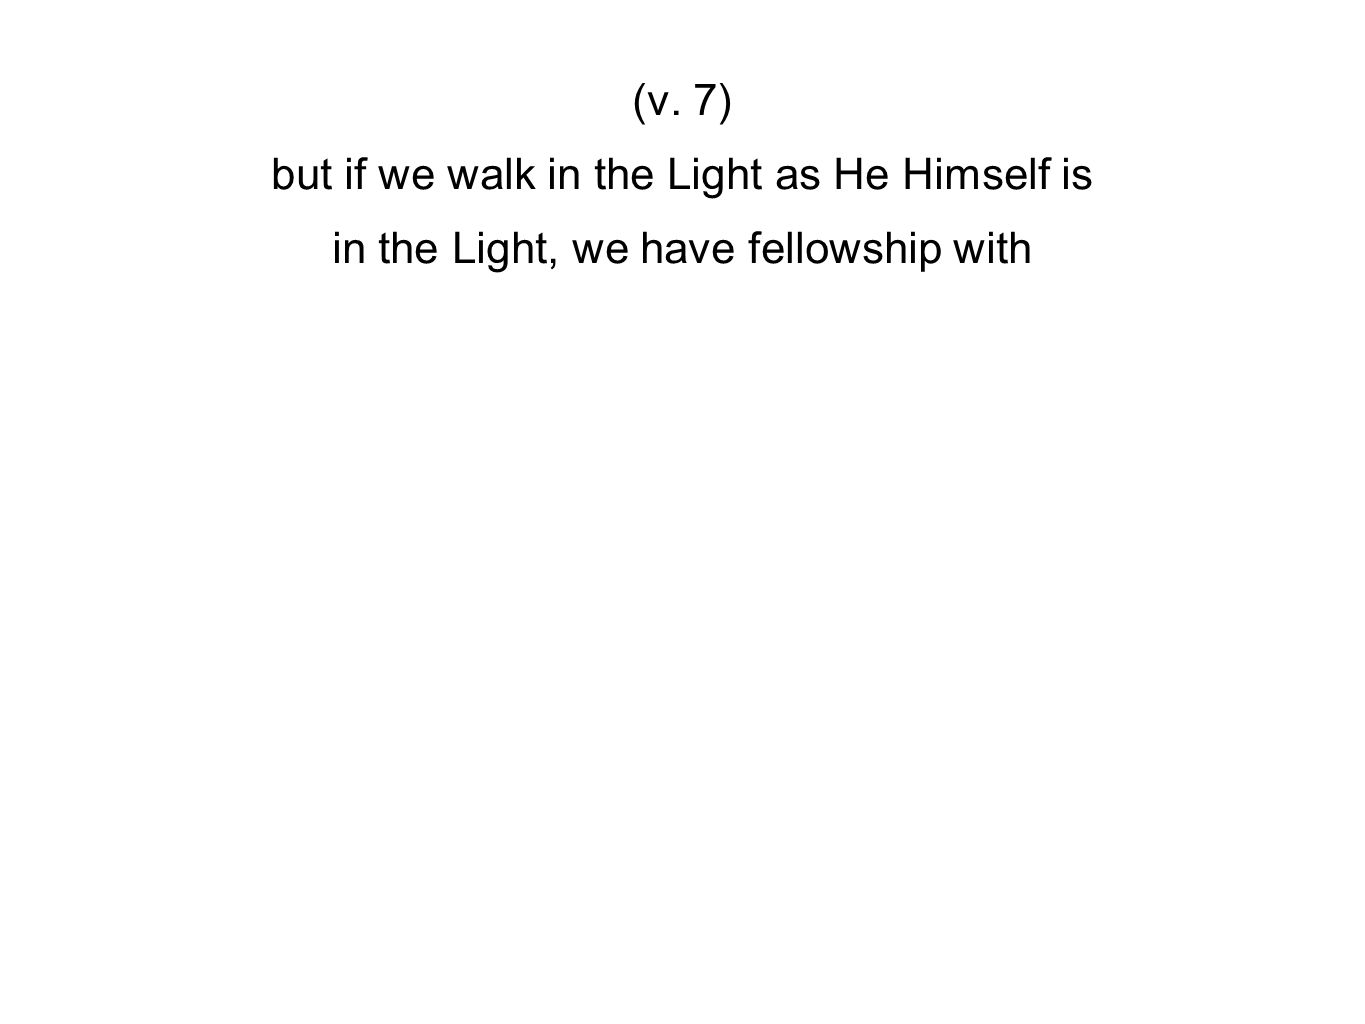 (v. 7) but if we walk in the Light as He Himself is in the Light, we have fellowship with